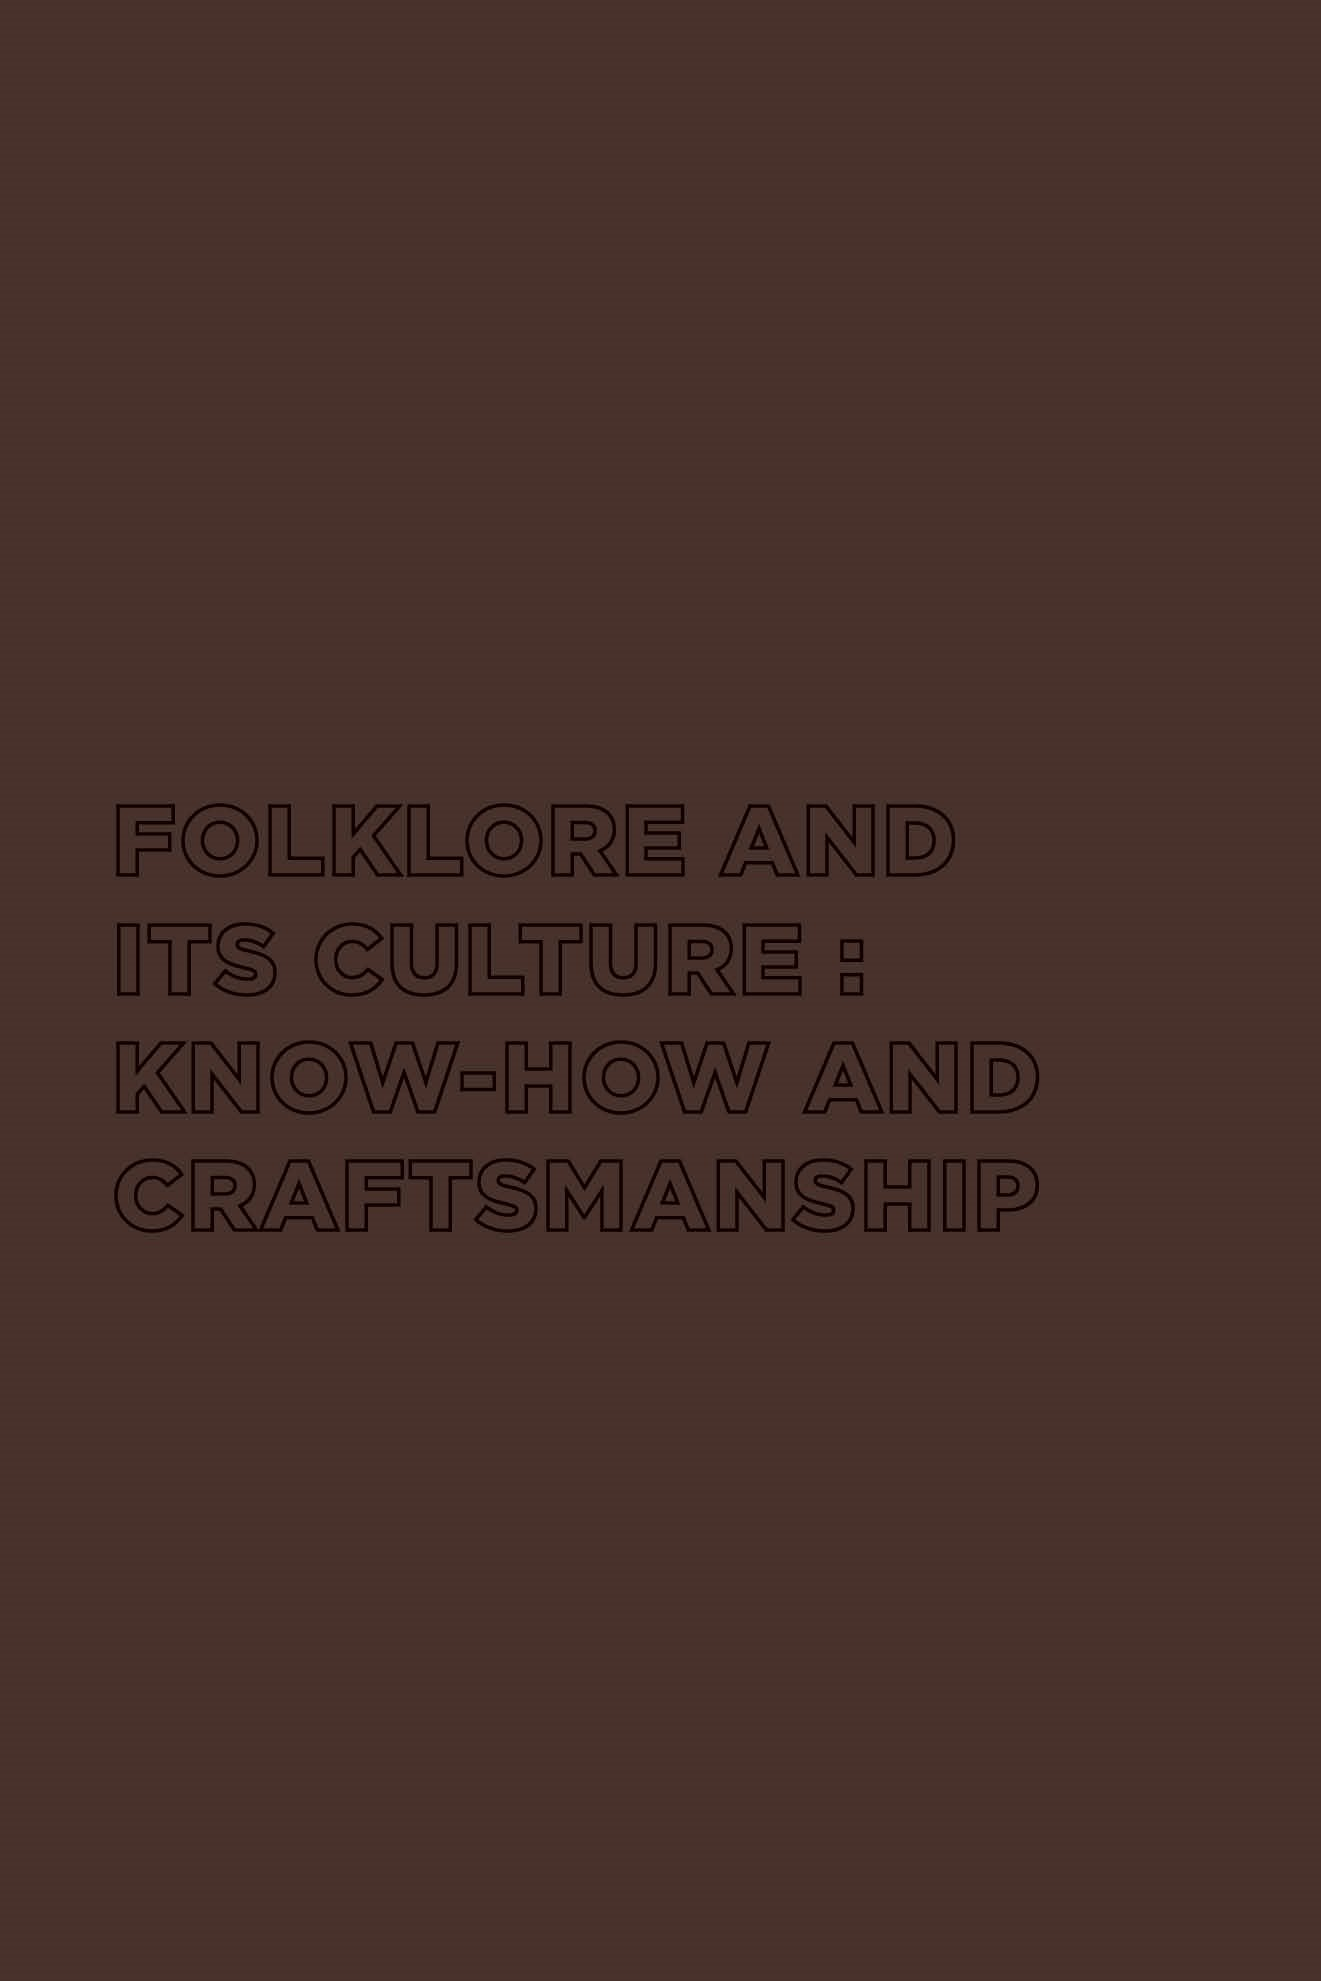 Folklore, their culture of know-how and craftsmanship